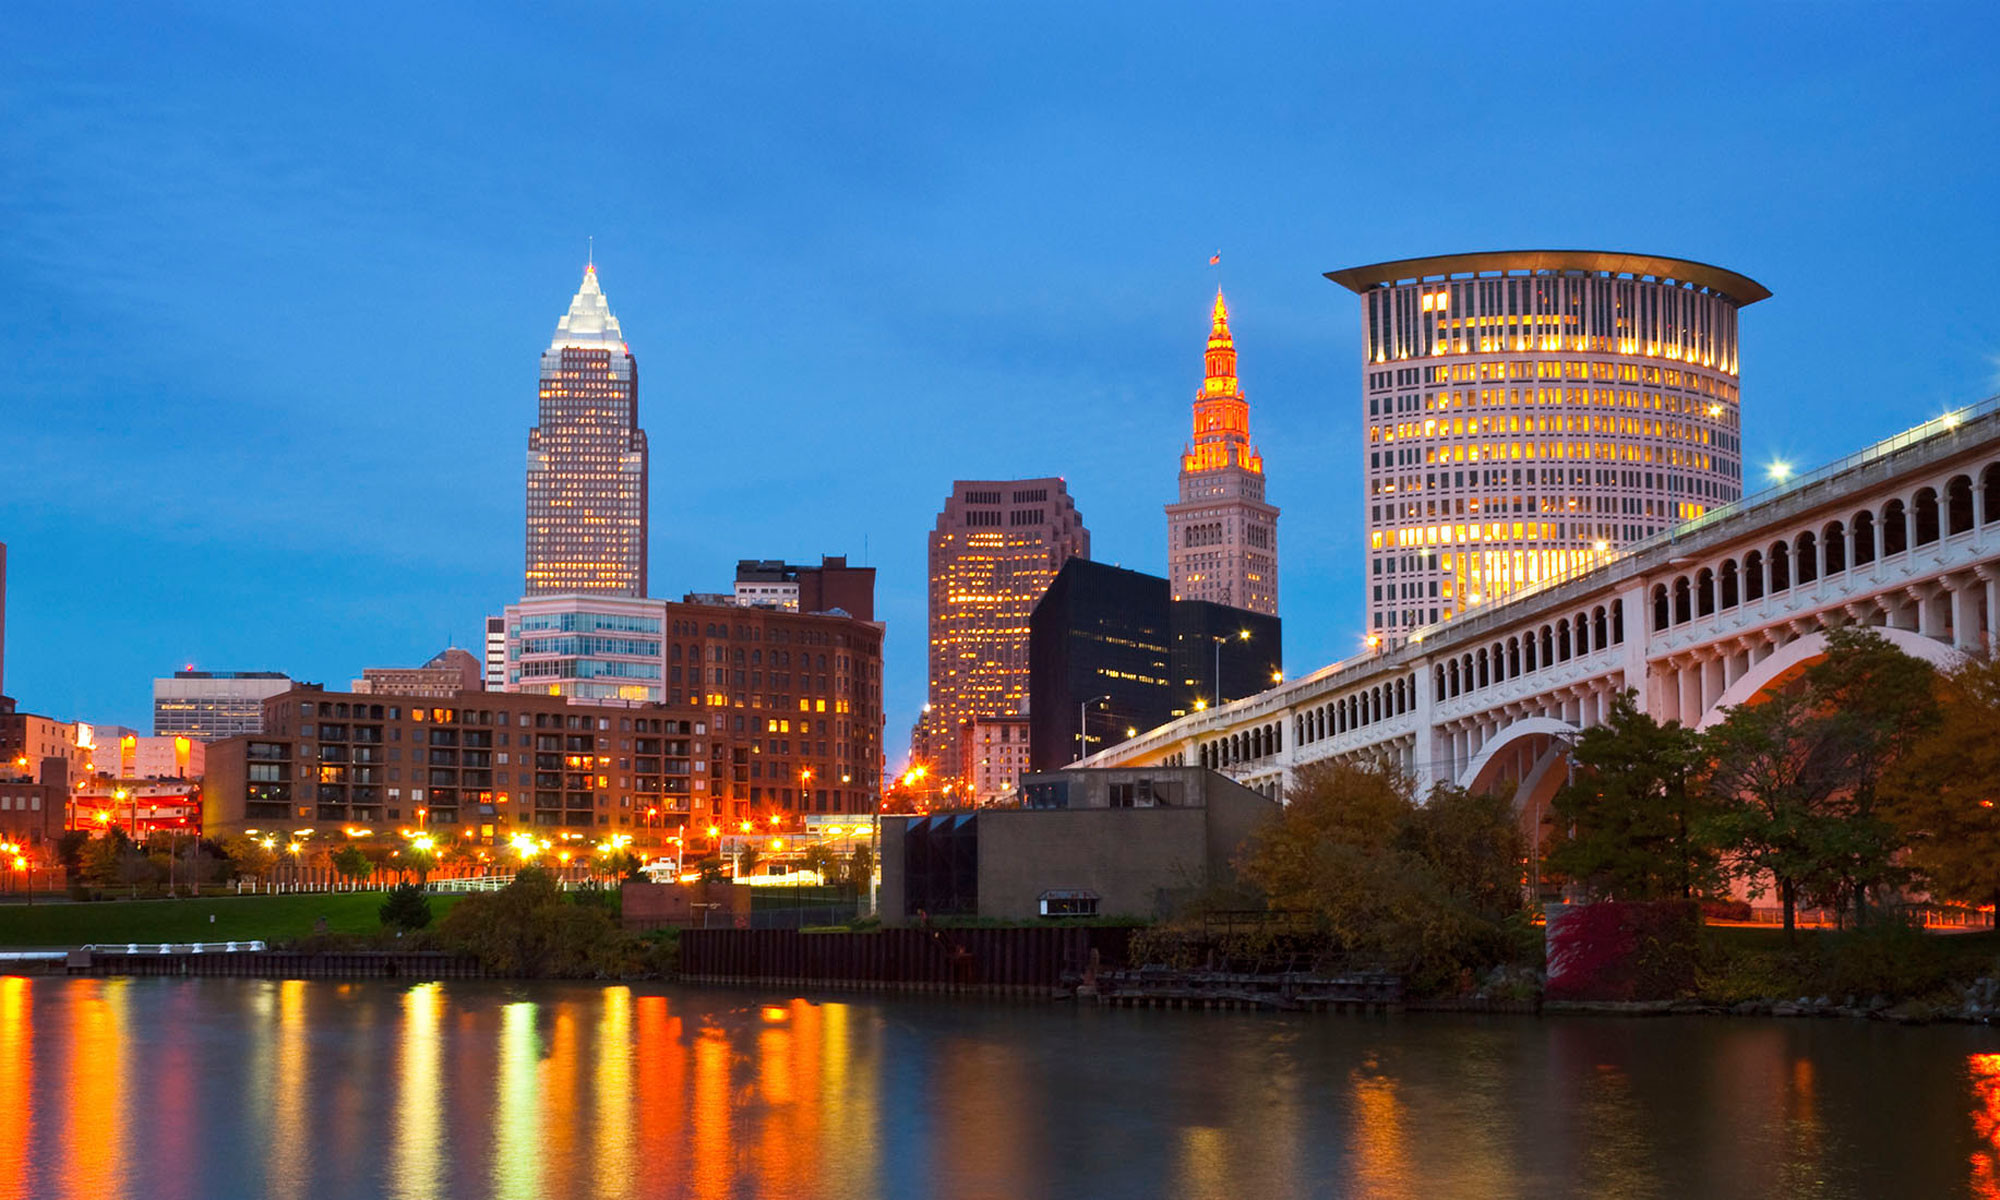 70 Cleveland Hd Android Iphone Desktop Hd Backgrounds Wallpapers 1080p 4k 2000x1200 2021